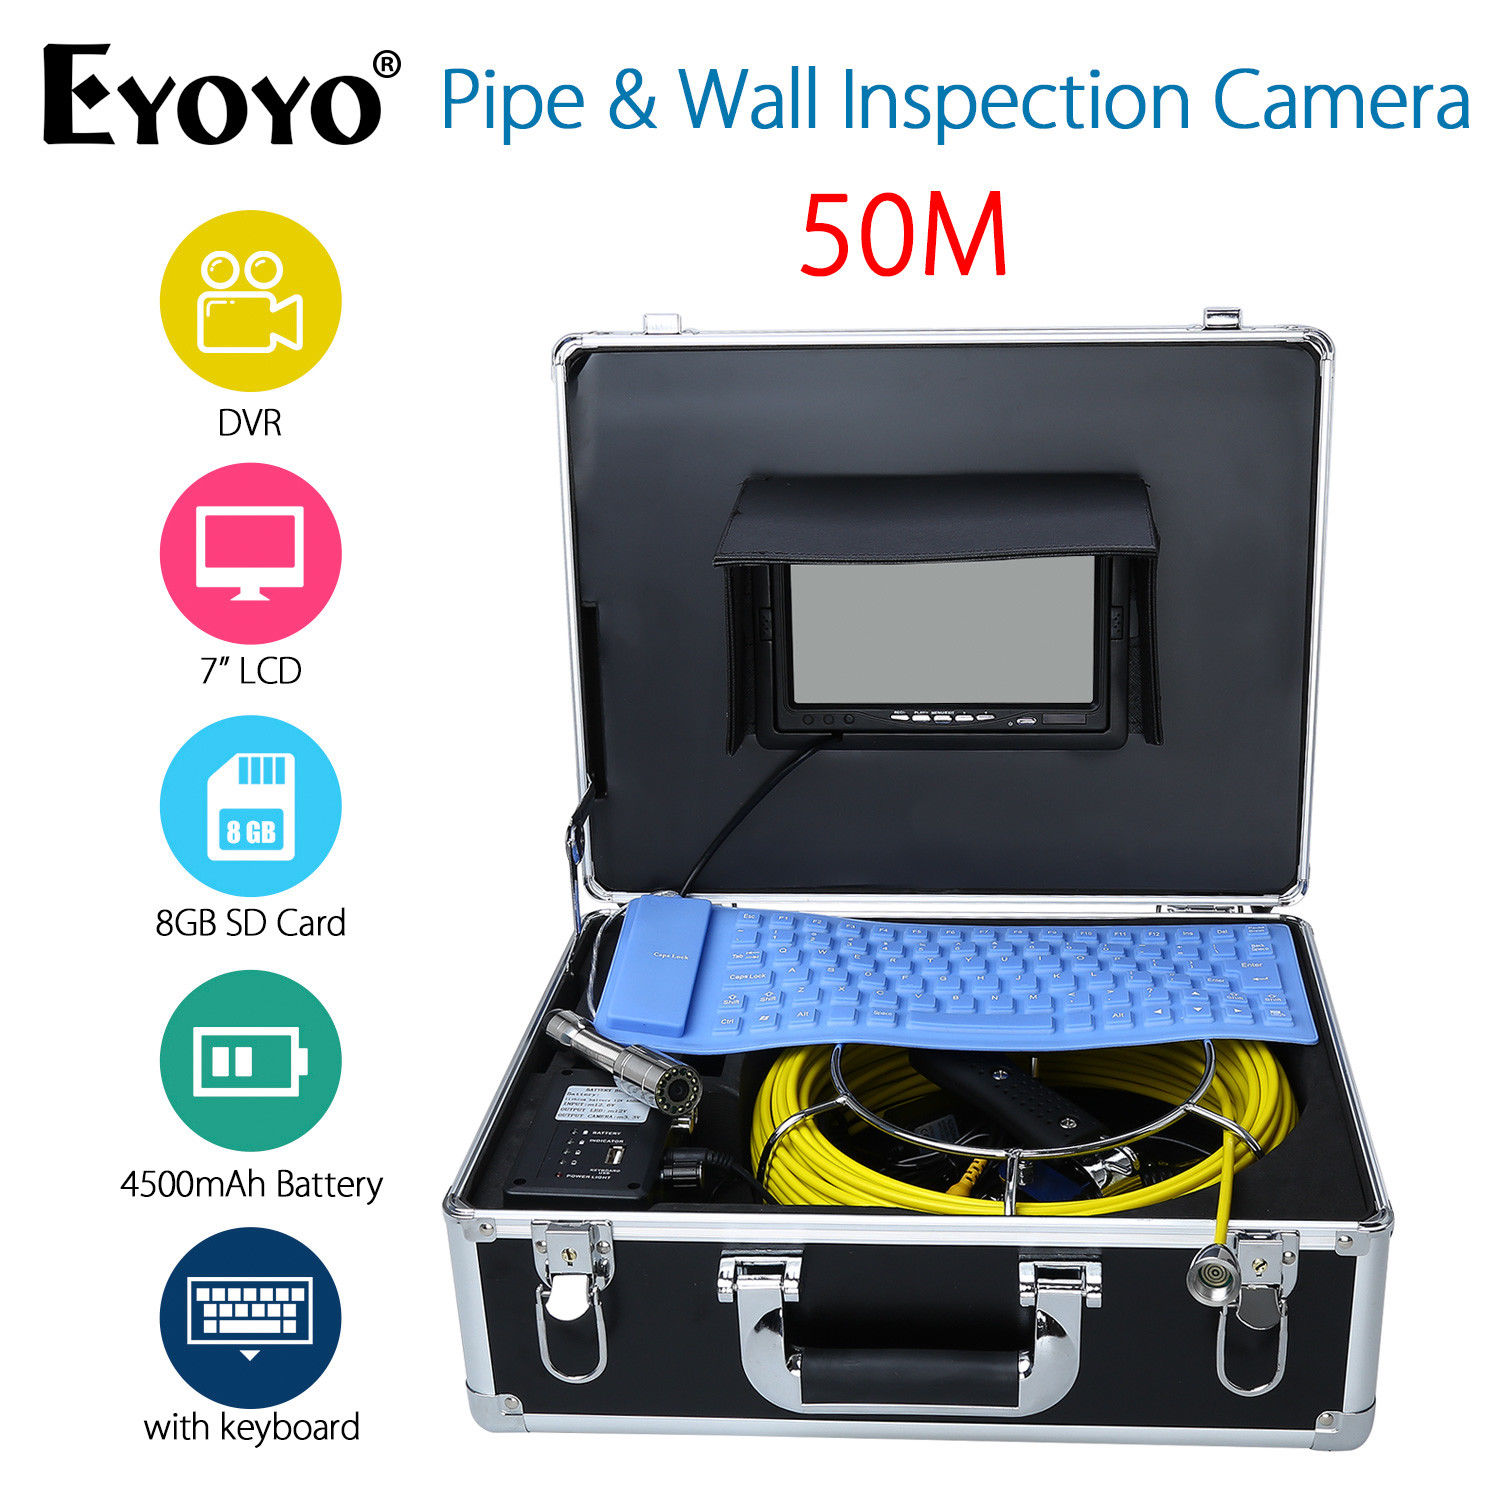 Eyoyo 50M 7 LCD HD 1000TVL Endoscope Snake Sewer Camera Pipe Wall Inspection Waterpoorf Cam DVR Recording w/Portable Keyboard eyoyo 7 lcd screen 20m 800 480 1000tvl 4500mah sewer drain camera pipe wall inspection endoscope w keyboard dvr recording 8gb